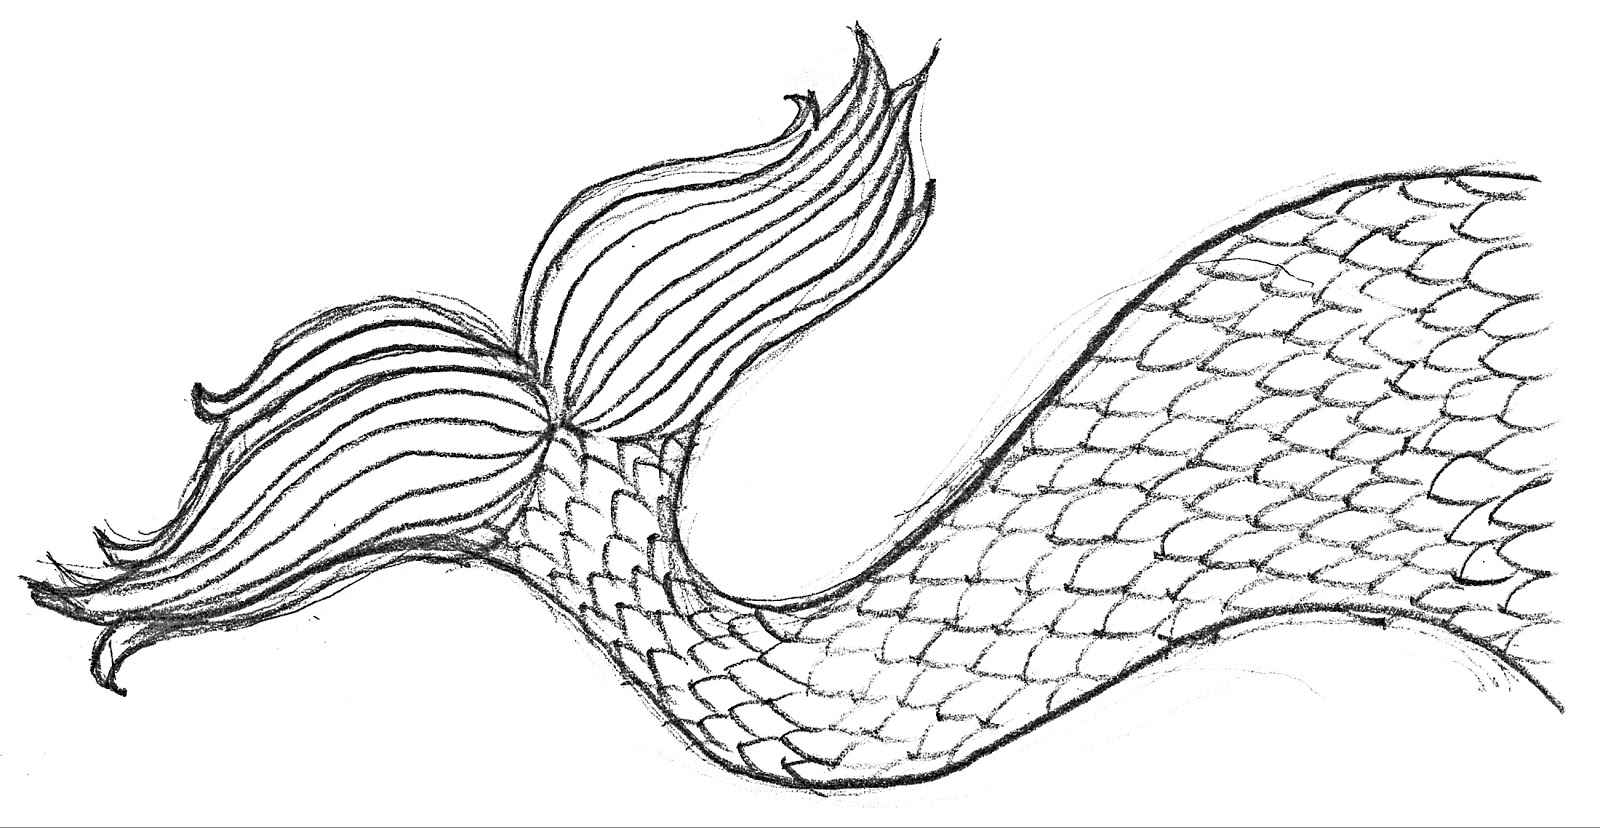 coloring pages of mermaid tails mermaid tail coloring page pages tails of mermaid coloring